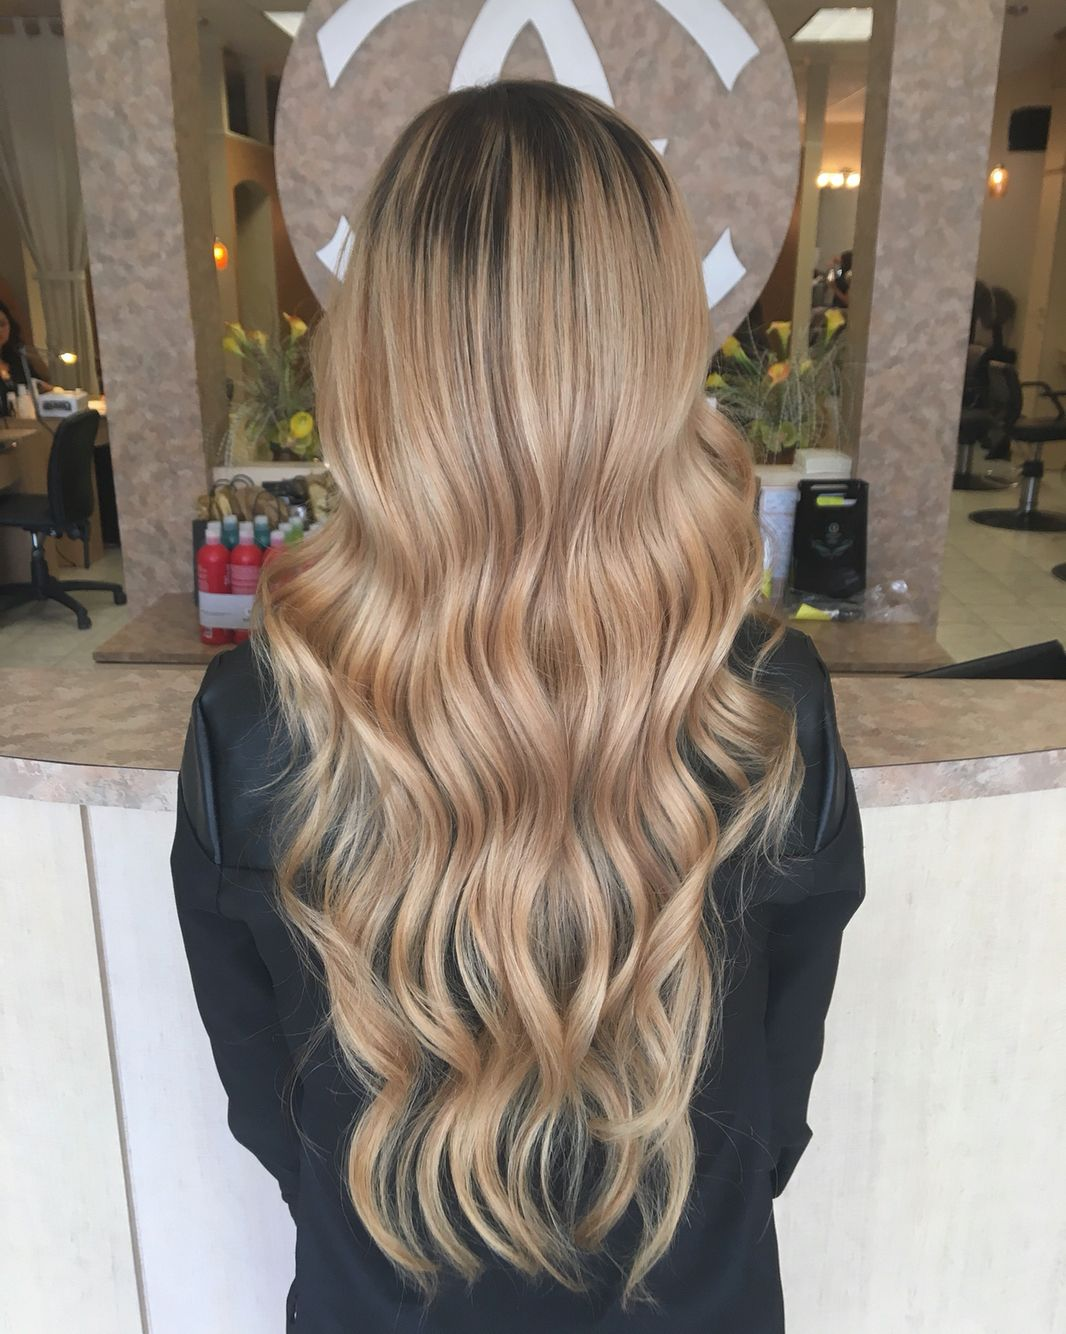 Blonde Hair Long Hair Hand Painted Balayage Highlights Rooted Lived